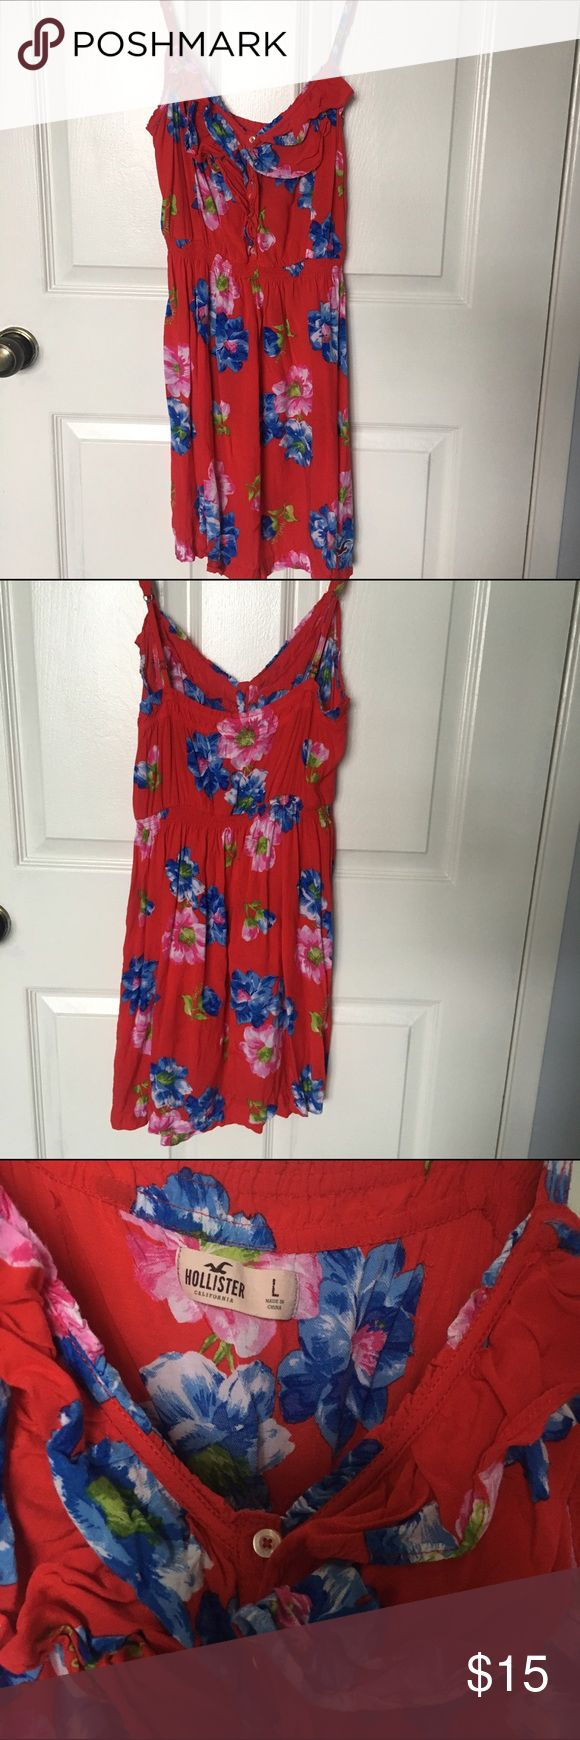 Red Floral Hollister Dress Tag says large but fits more like a medium. The ruffles in the third picture probably need to be ironed out. I wore this a few times but it's in good condition. Hollister Dresses Mini